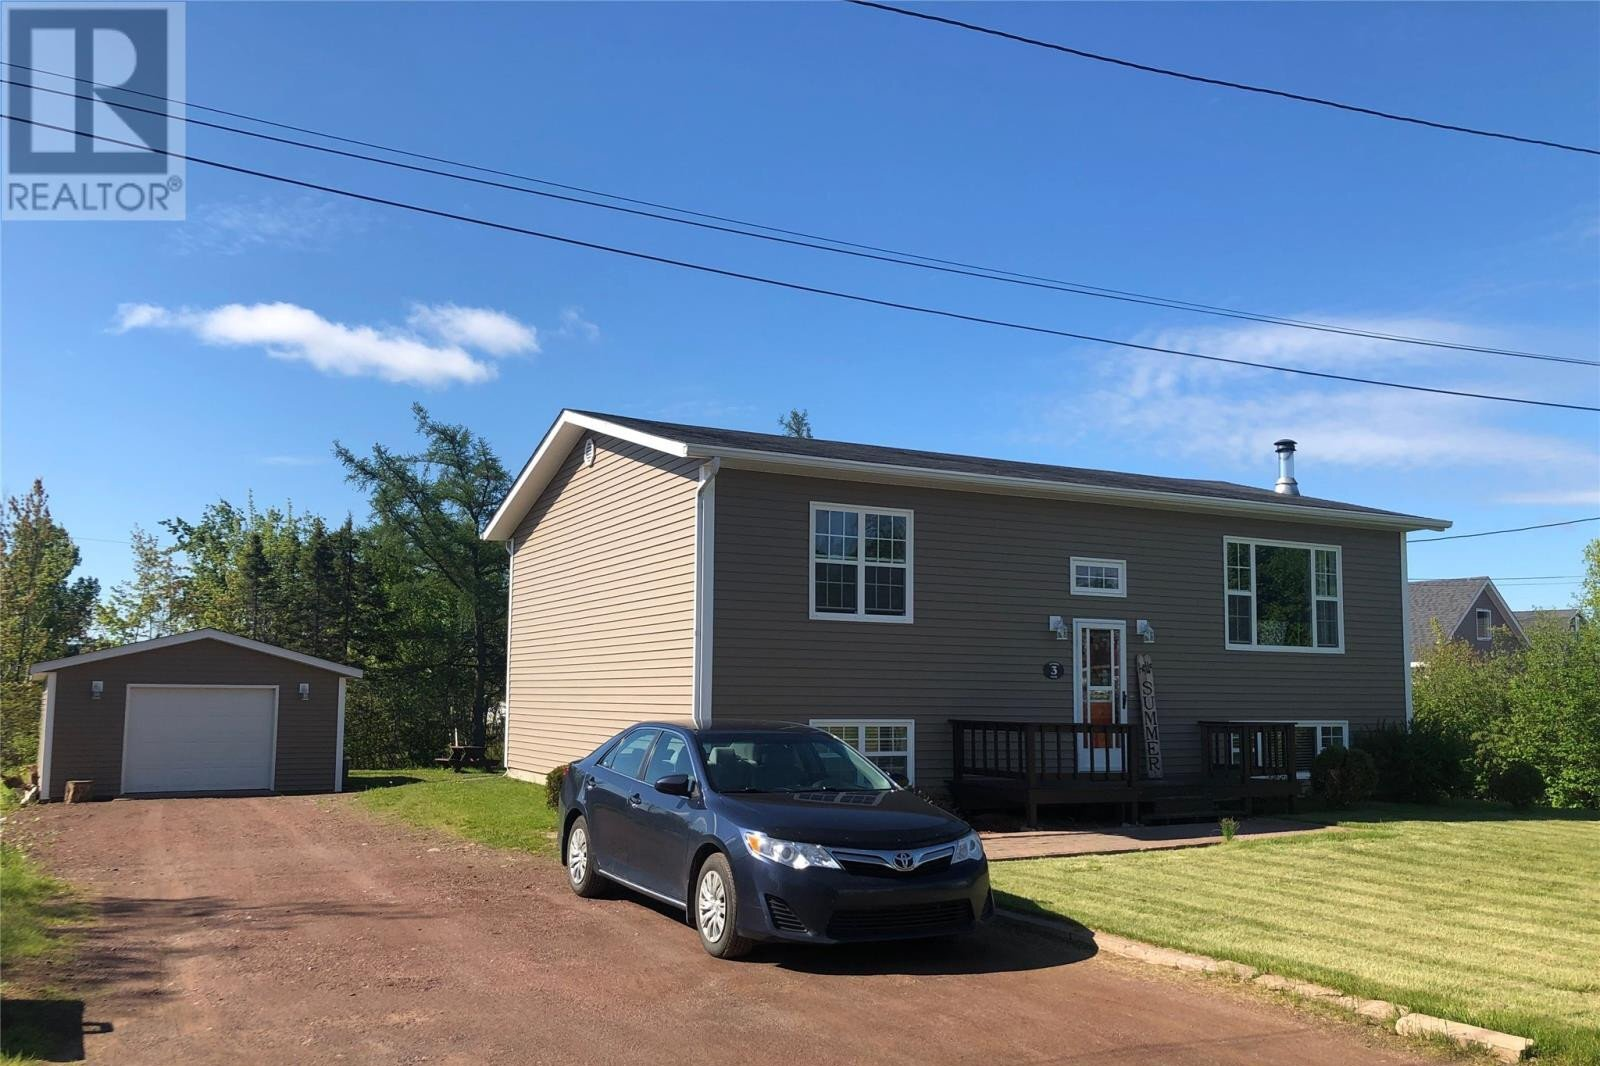 House for sale at 3 Snows Ln Bishop's Falls Newfoundland - MLS: 1217630